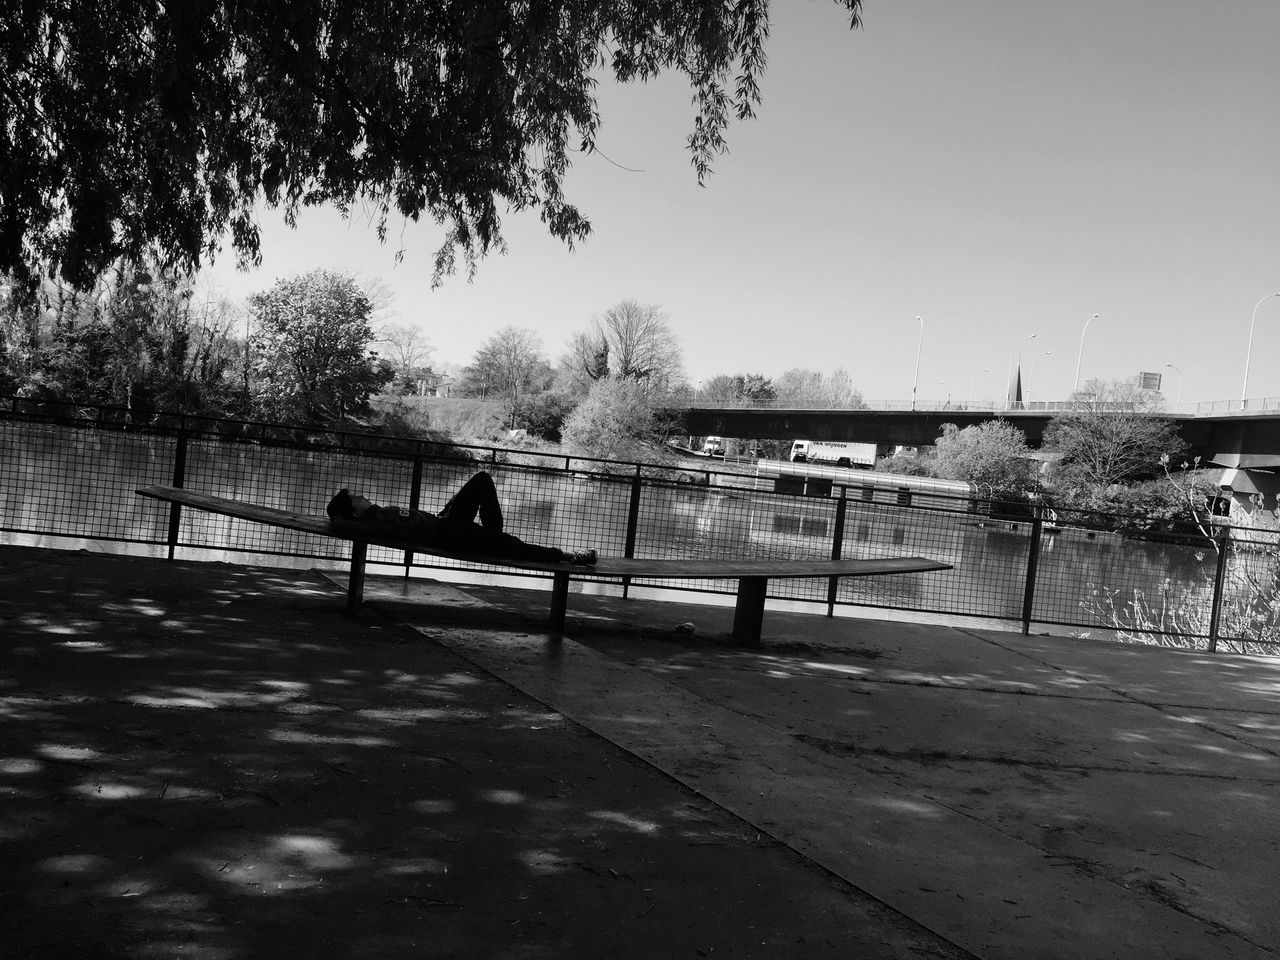 water, tree, railing, river, real people, built structure, day, outdoors, clear sky, sky, architecture, nature, men, skateboard park, people